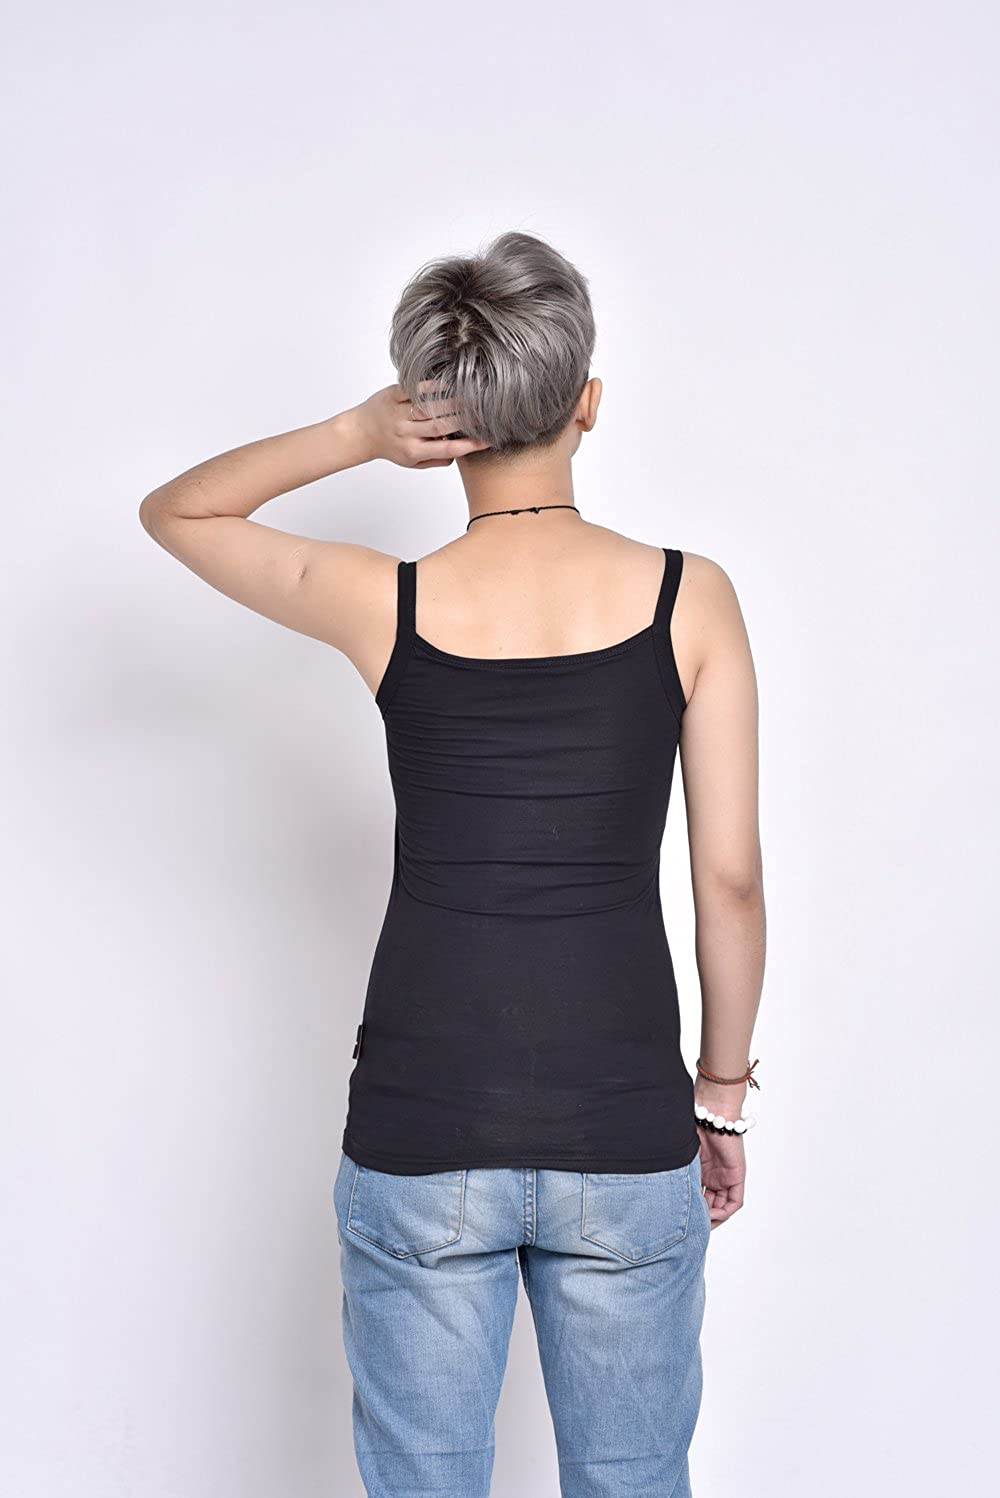 BaronHong Stronger Elastic Band Chest Binder Cotton Wide Shoulder Strapy Tank Top for Tomboy Trans Lesbian